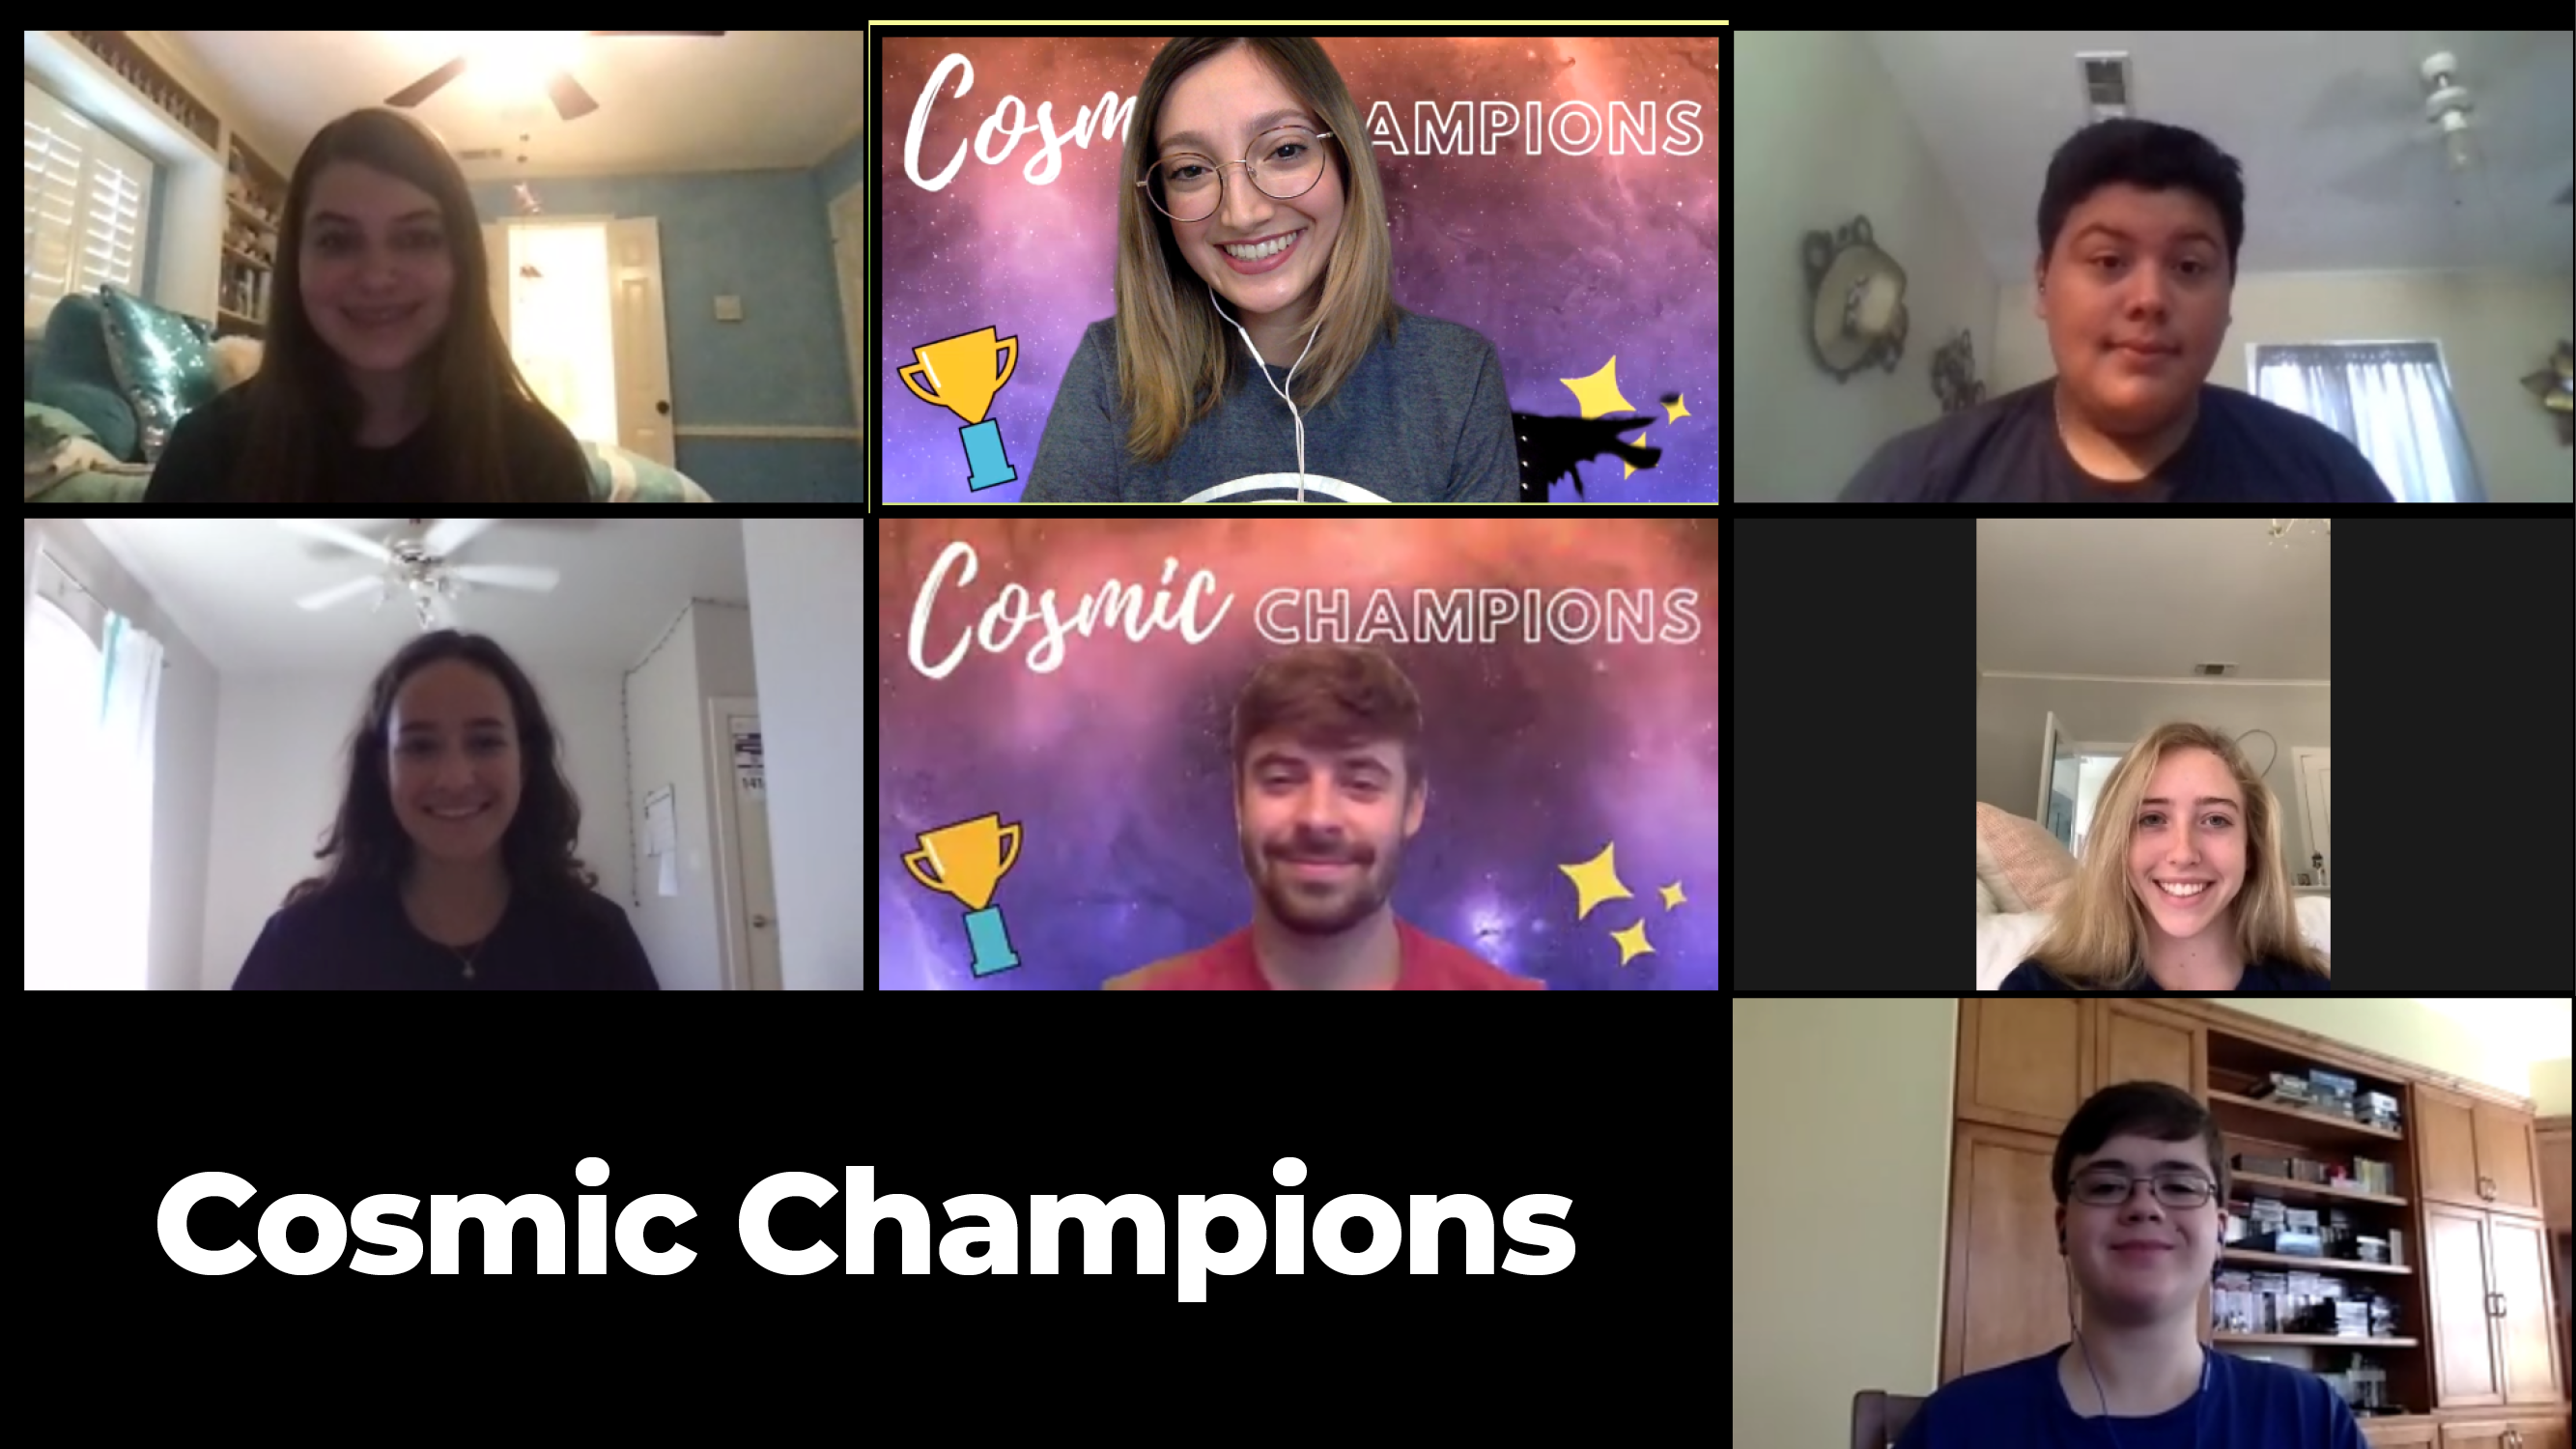 Cosmic Champions Group